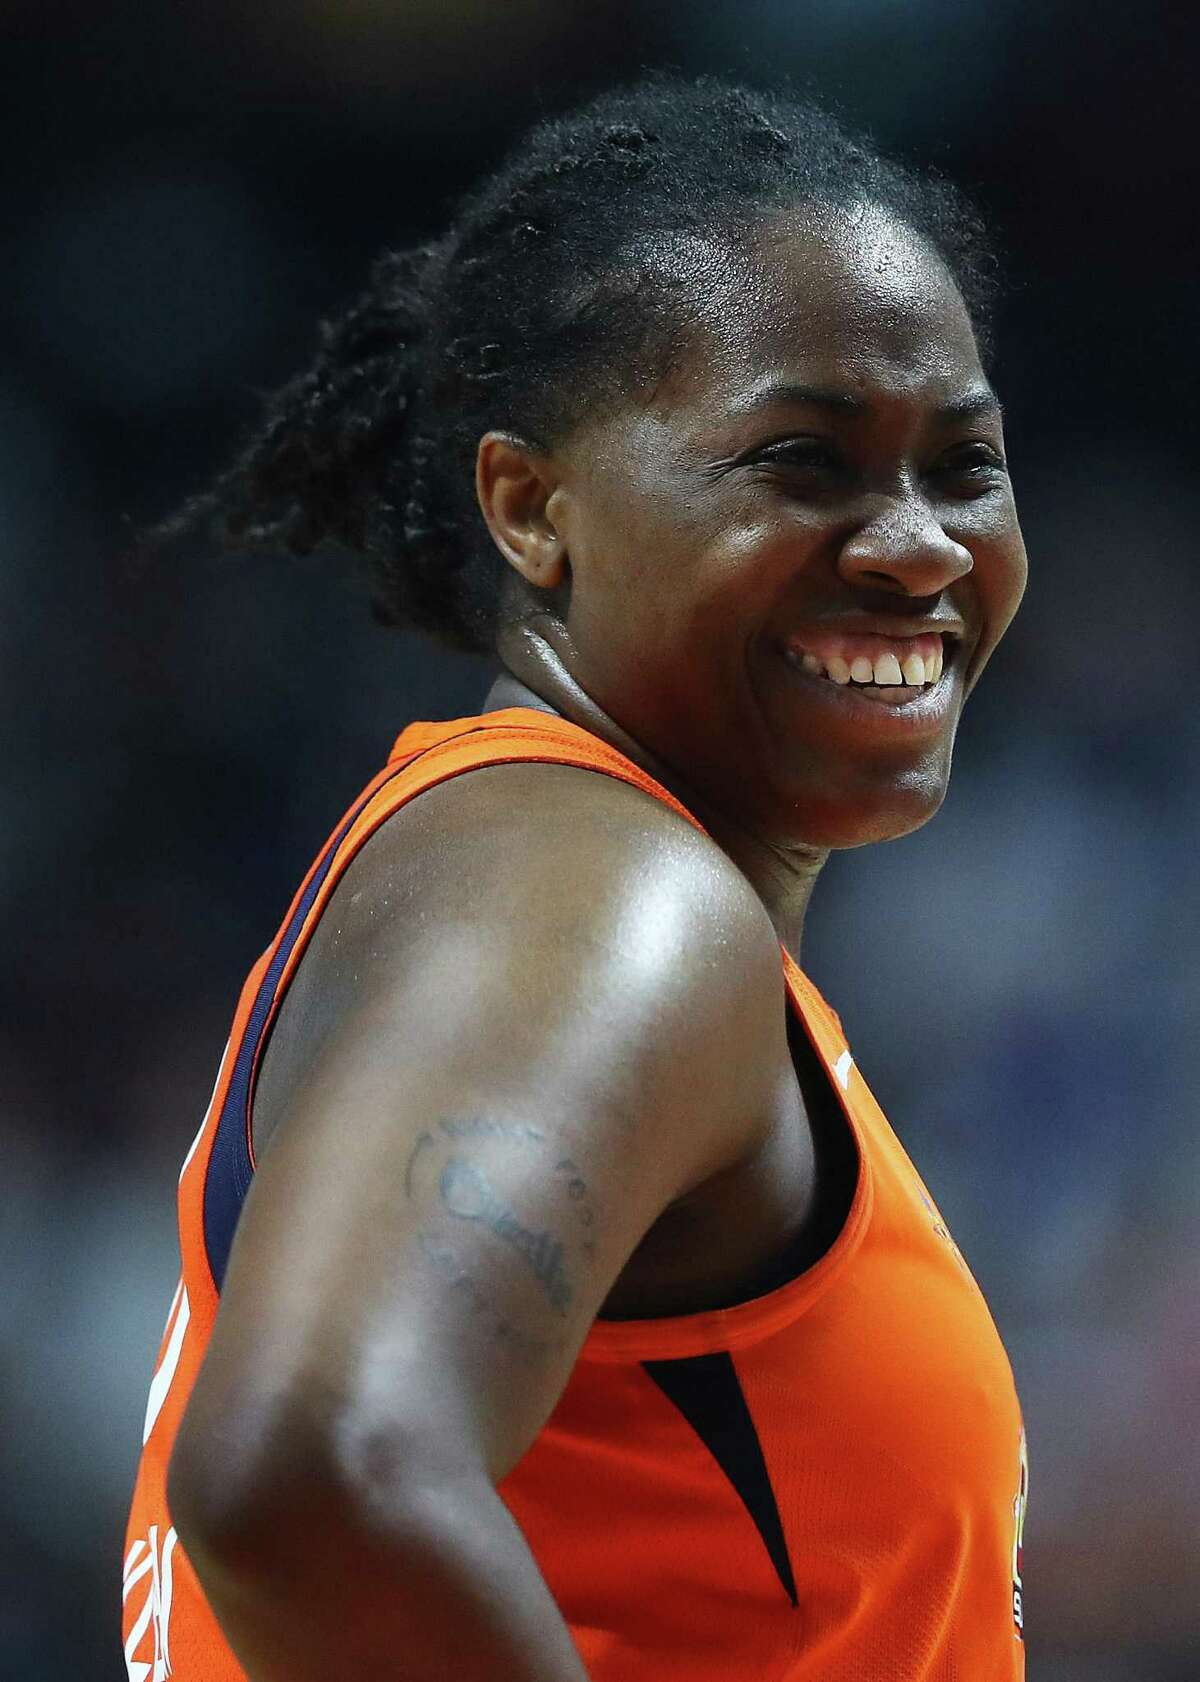 UNCASVILLE, CONNECTICUT - OCTOBER 08: Shekinna Stricklen #40 of Connecticut Sun smiles during Game Four of the 2019 WNBA Finals between the Washington Mystics and Connecticut Sun at Mohegan Sun Arena on October 08, 2019 in Uncasville, Connecticut. (Photo by Maddie Meyer/Getty Images)